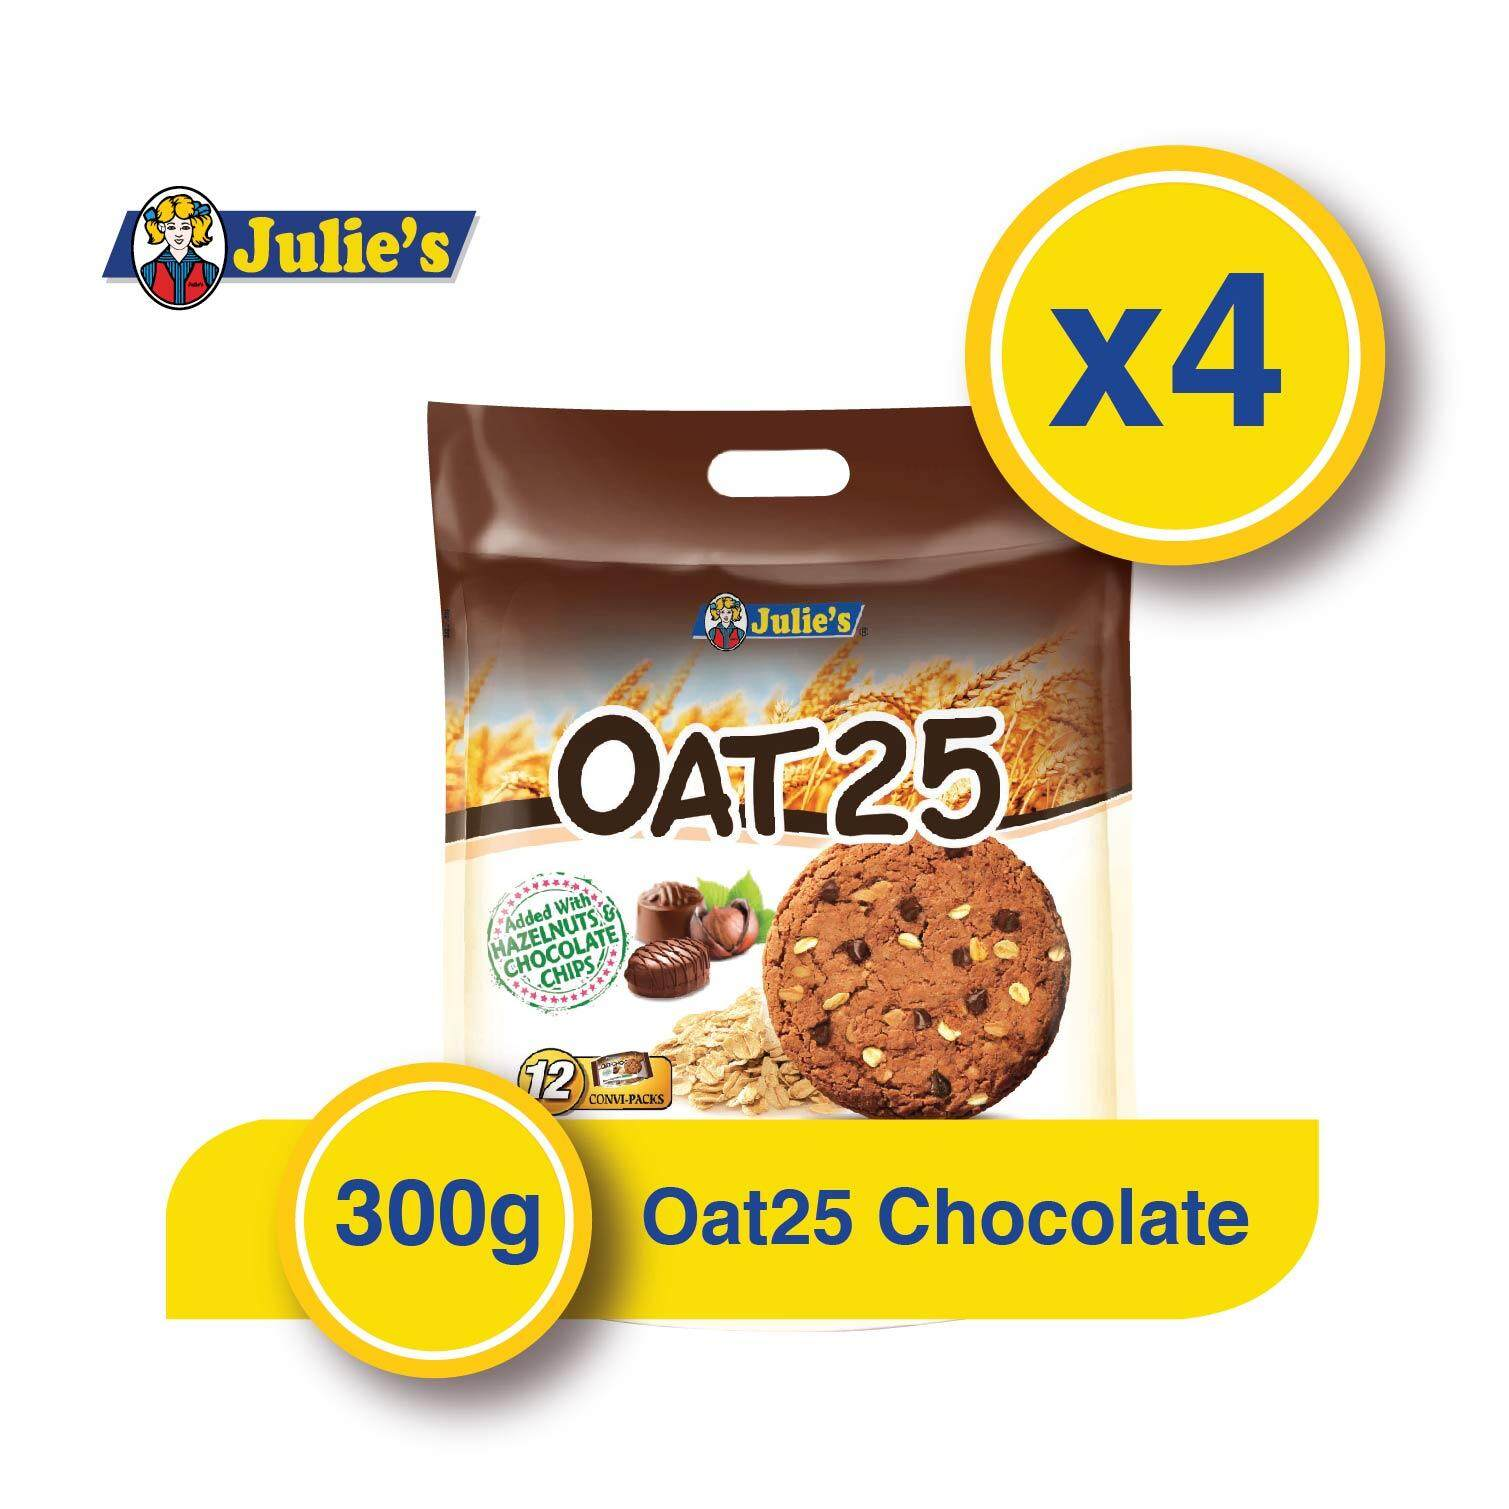 Julie\'s Oat25 Chocolate Biscuit 300g x 4 packs + FREE 5 Biscuit Pack